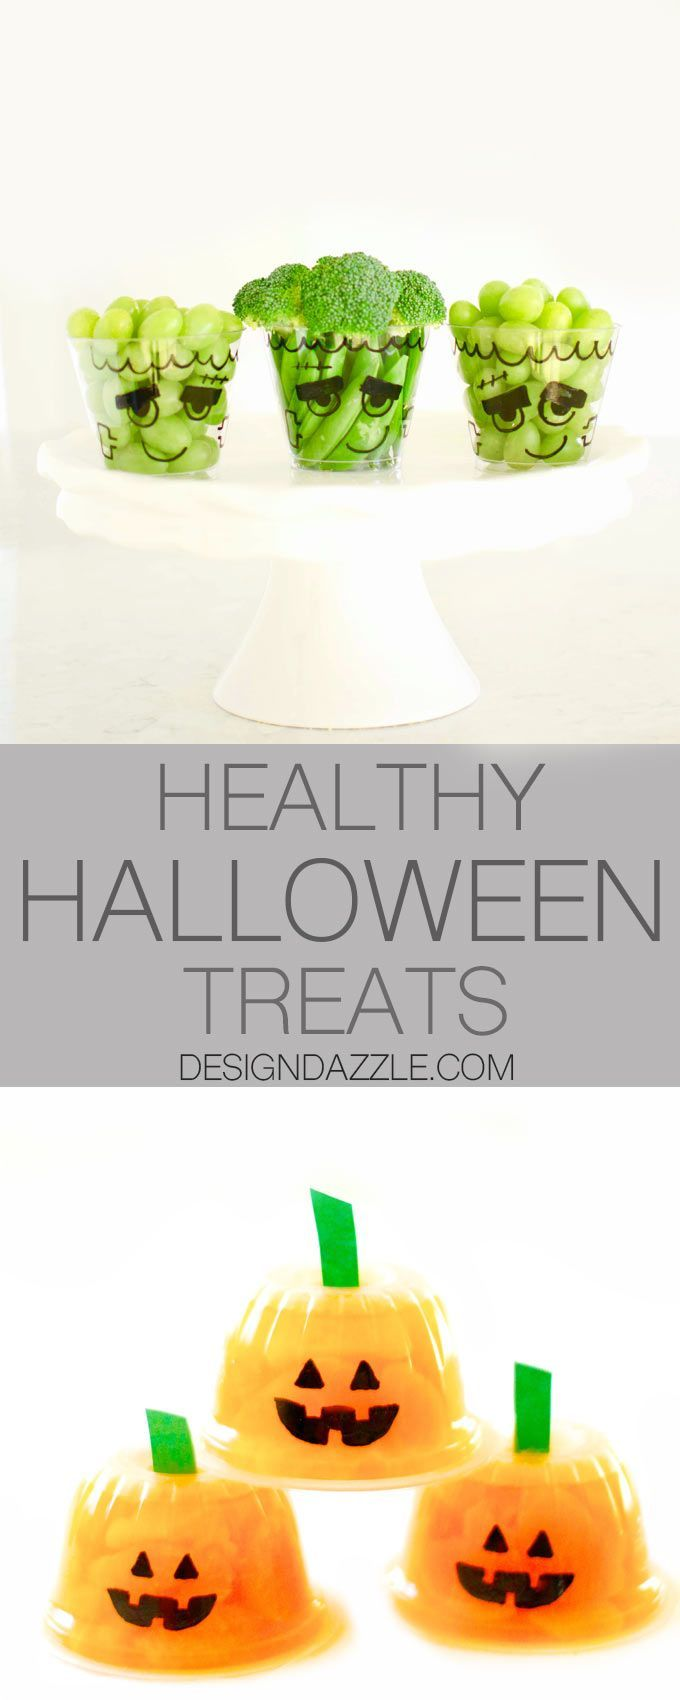 838 best halloween images on pinterest halloween ideas for 5 minute halloween decorations